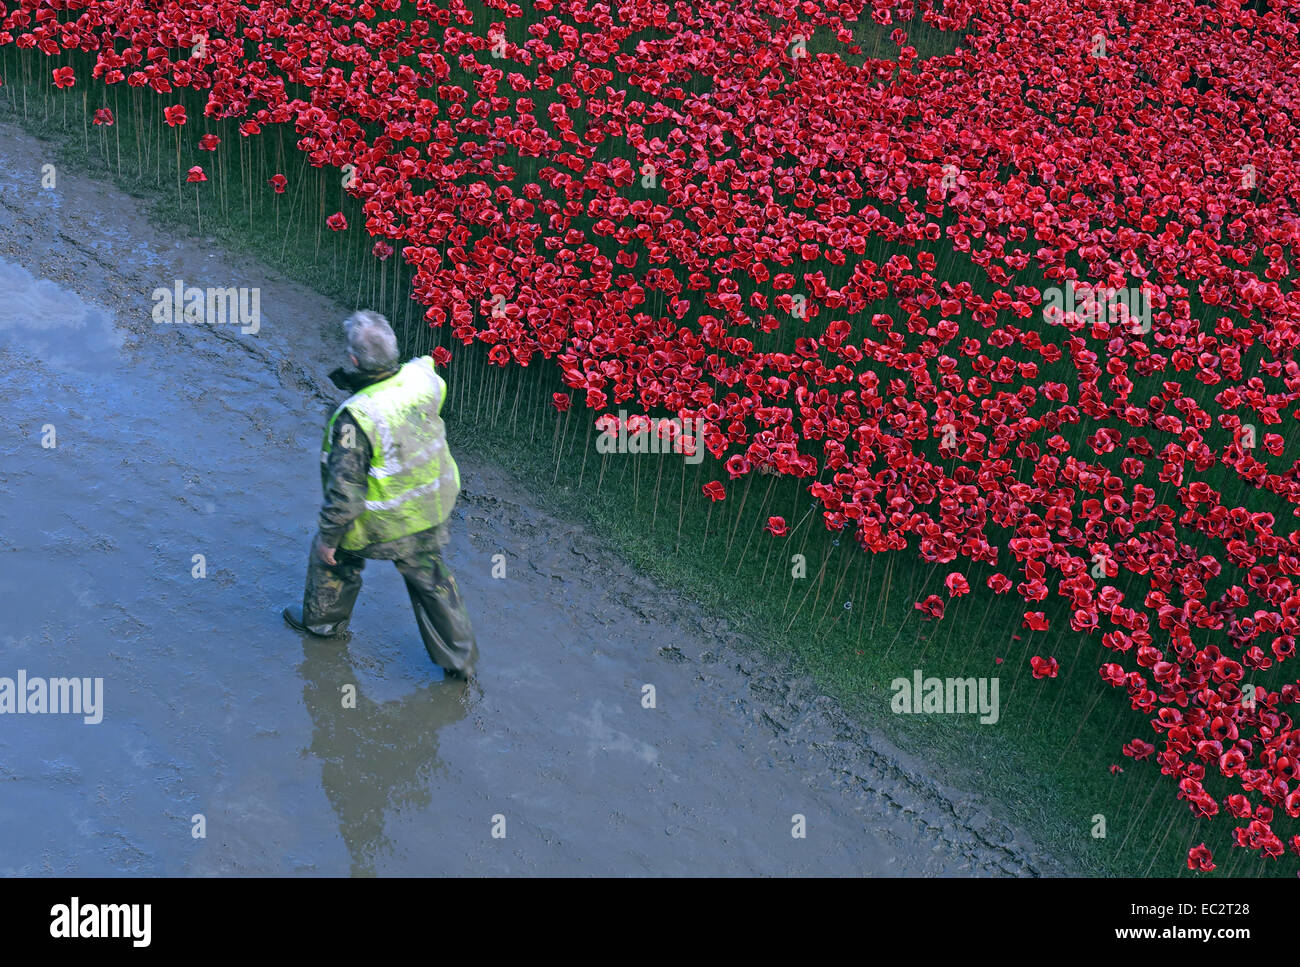 Volunteer next to Blood Swept Lands and Seas of Red poppies, at The Tower of London, England UK Stock Photo